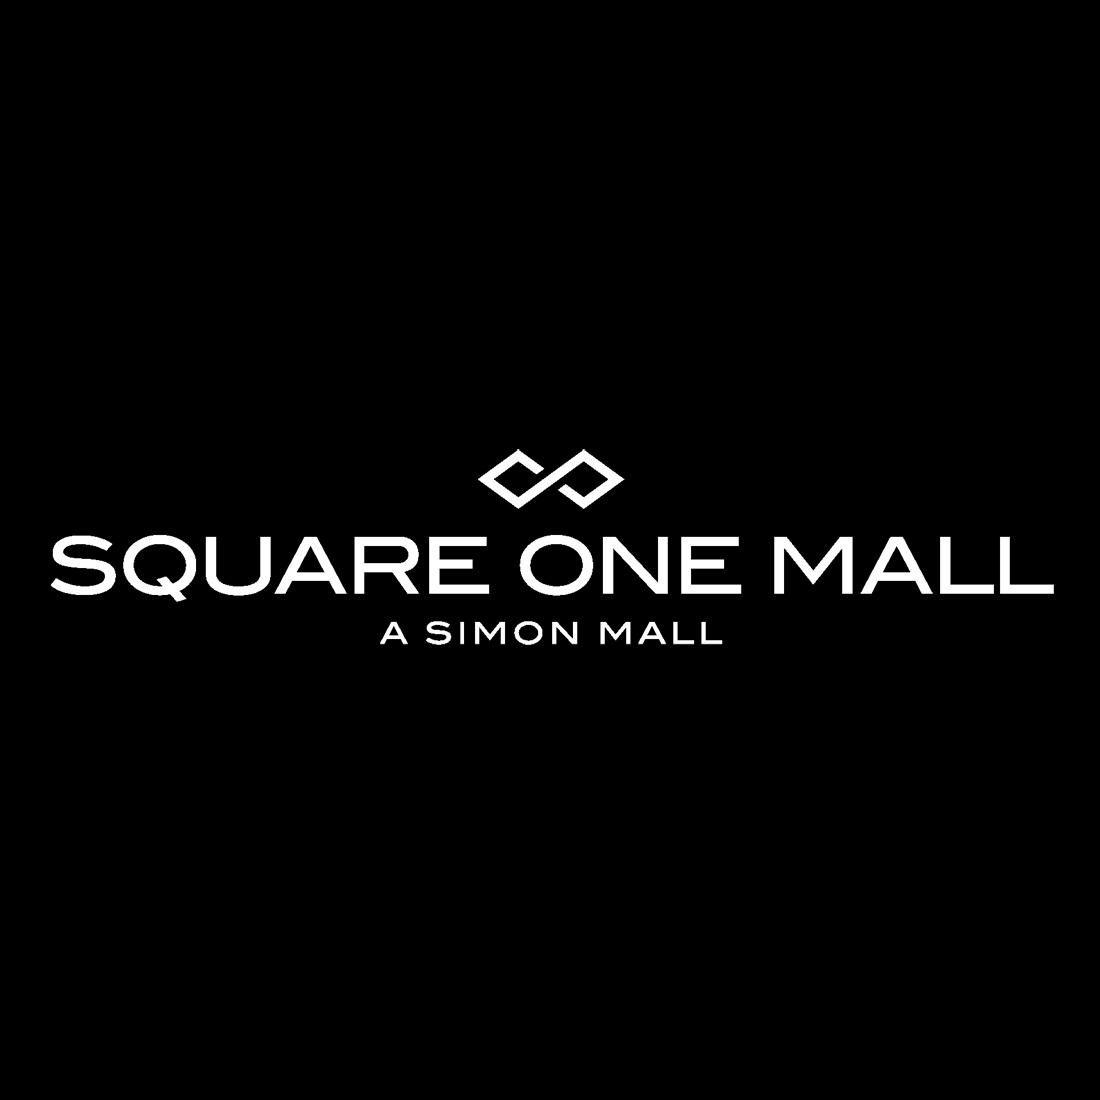 Square One Mall image 10